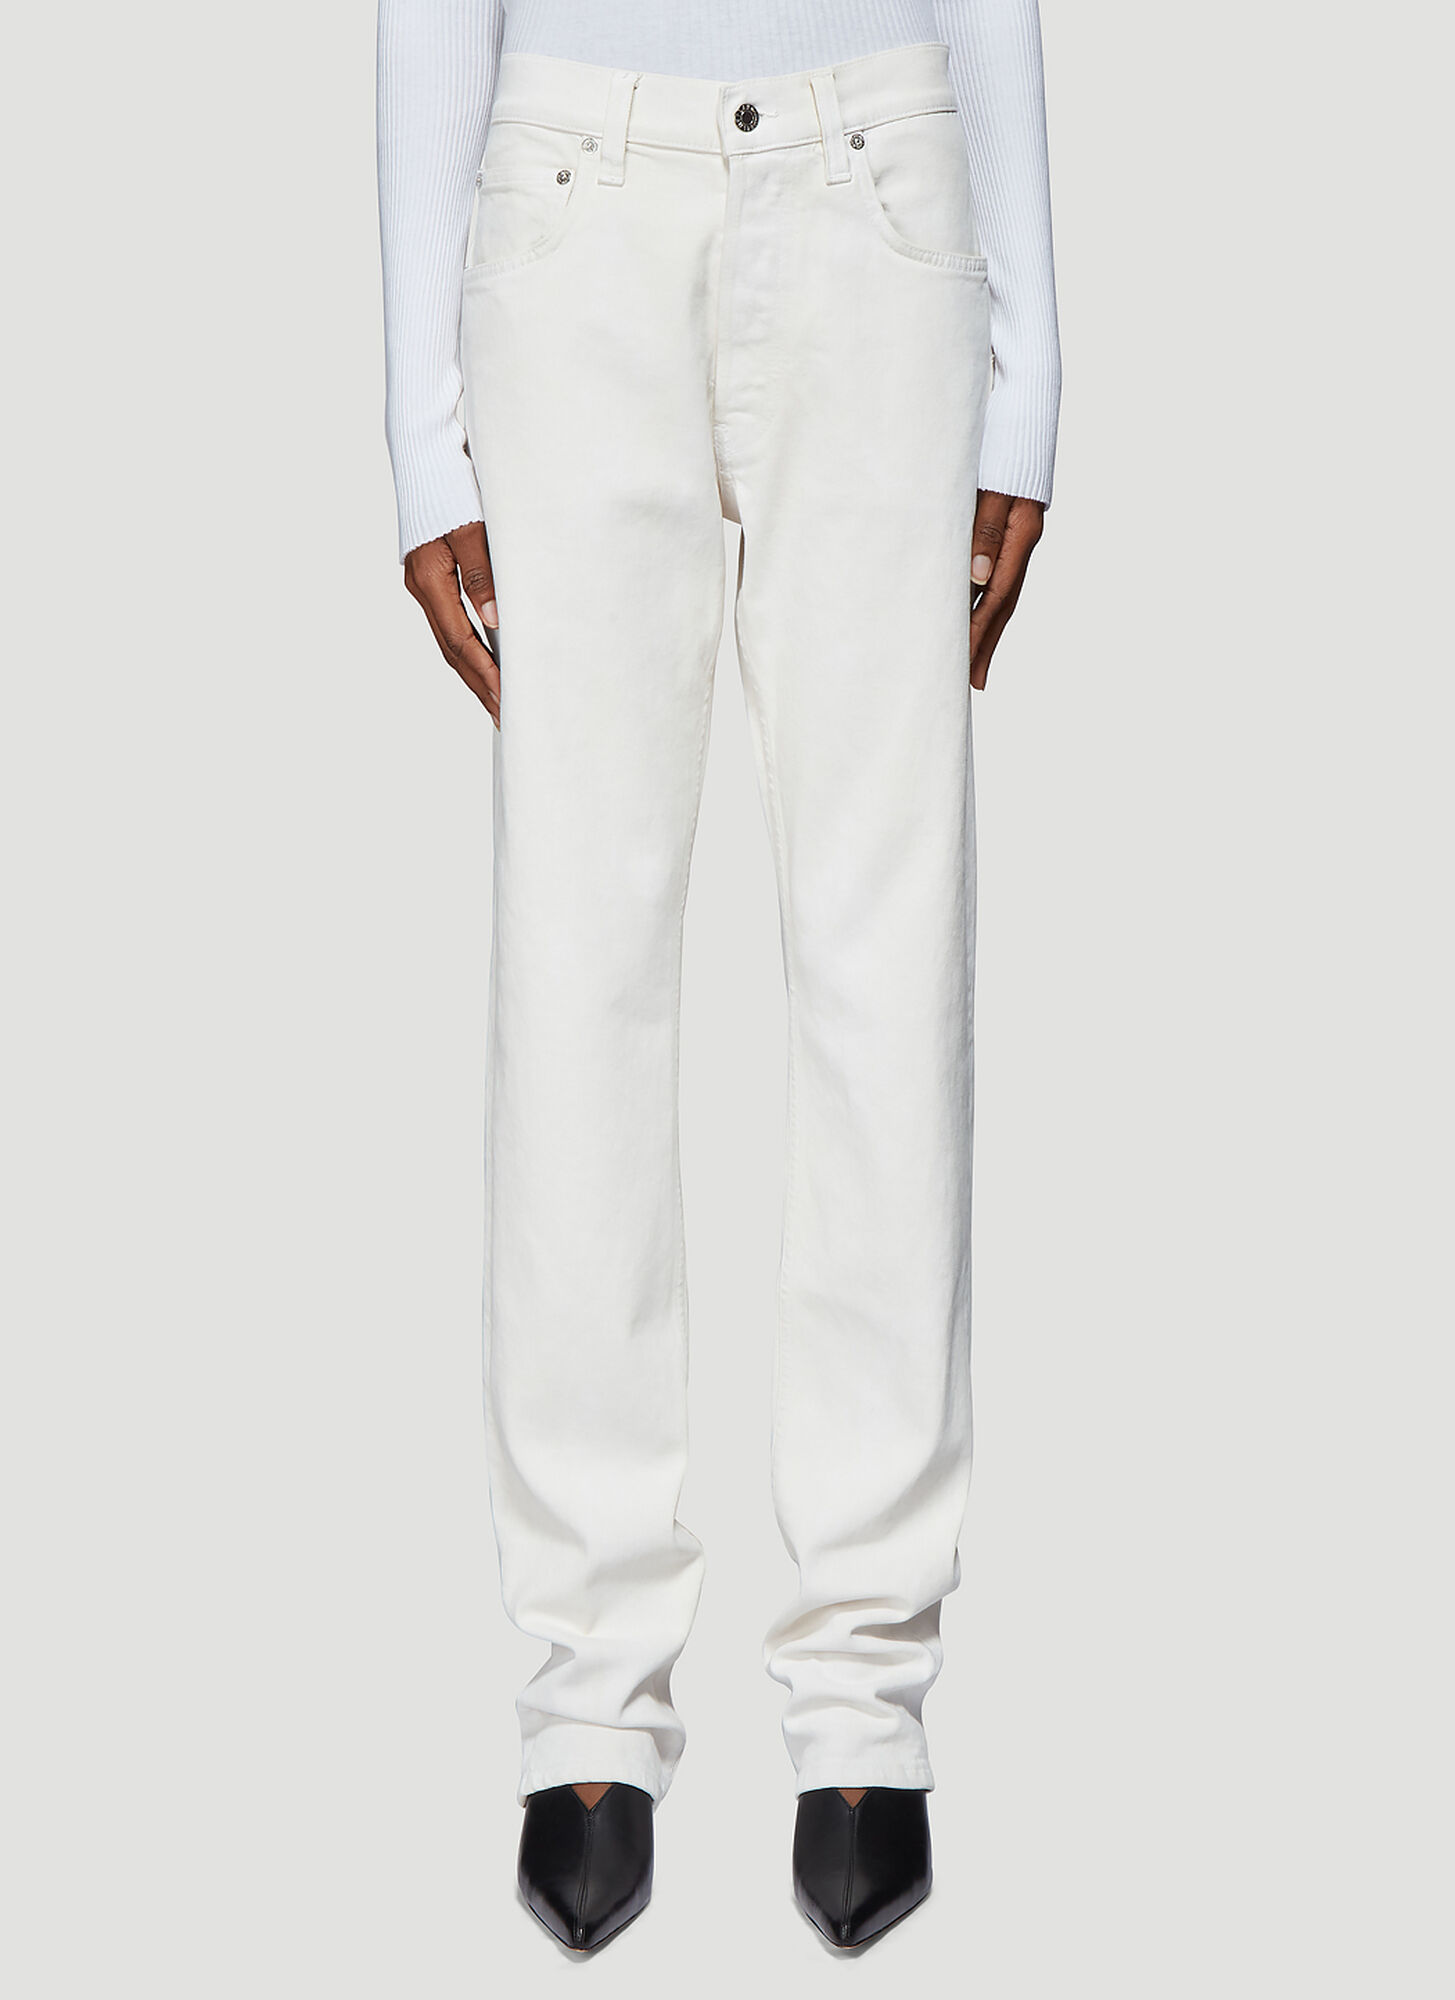 Helmut Lang Straight Leg Jeans in White